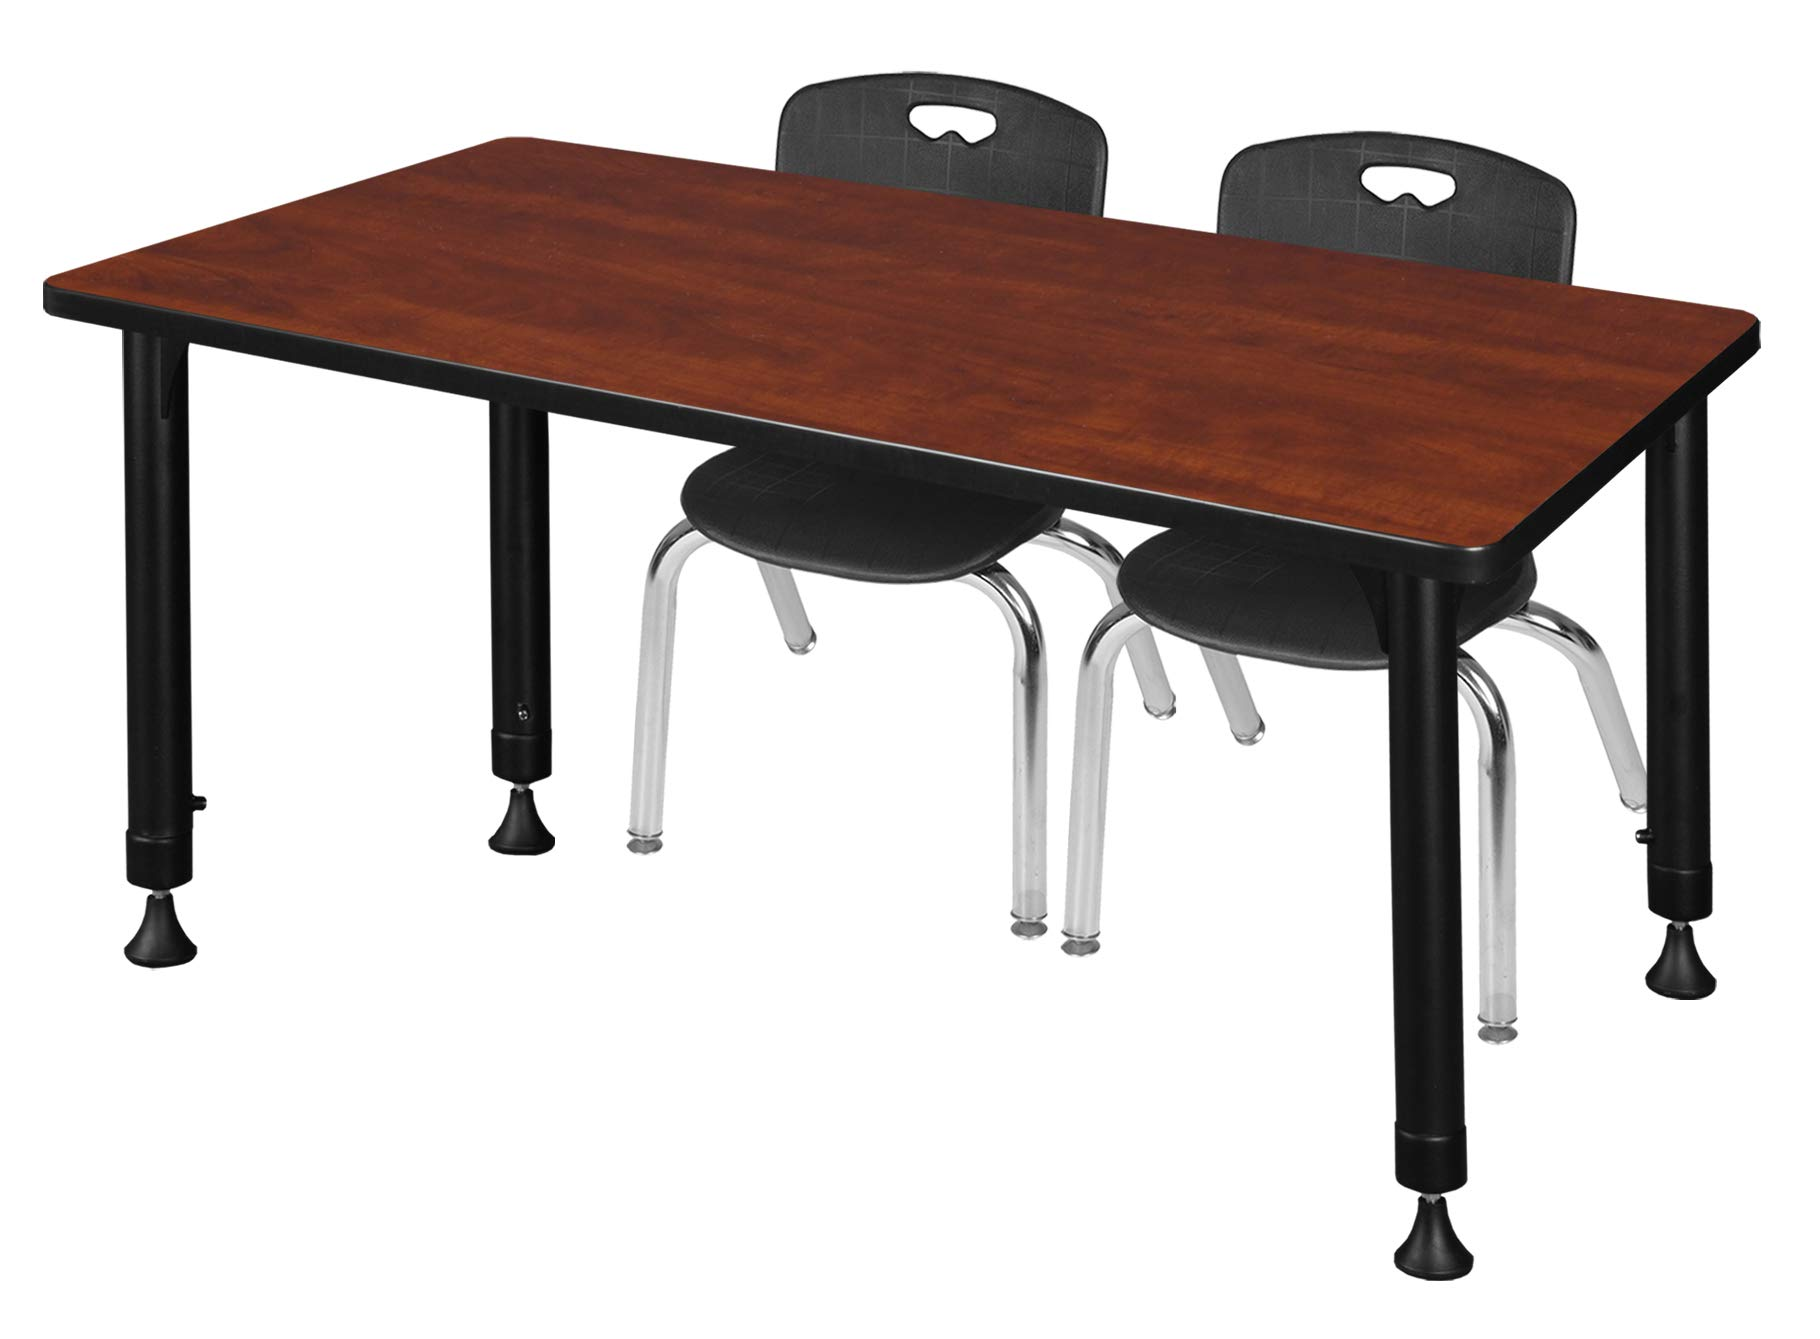 Regency MT4824CHAPBK45BK Kee Height Adjustable Classroom Table Set with Two 12'' Andy Chairs, 48'' x 24'', Cherry/Black by Regency